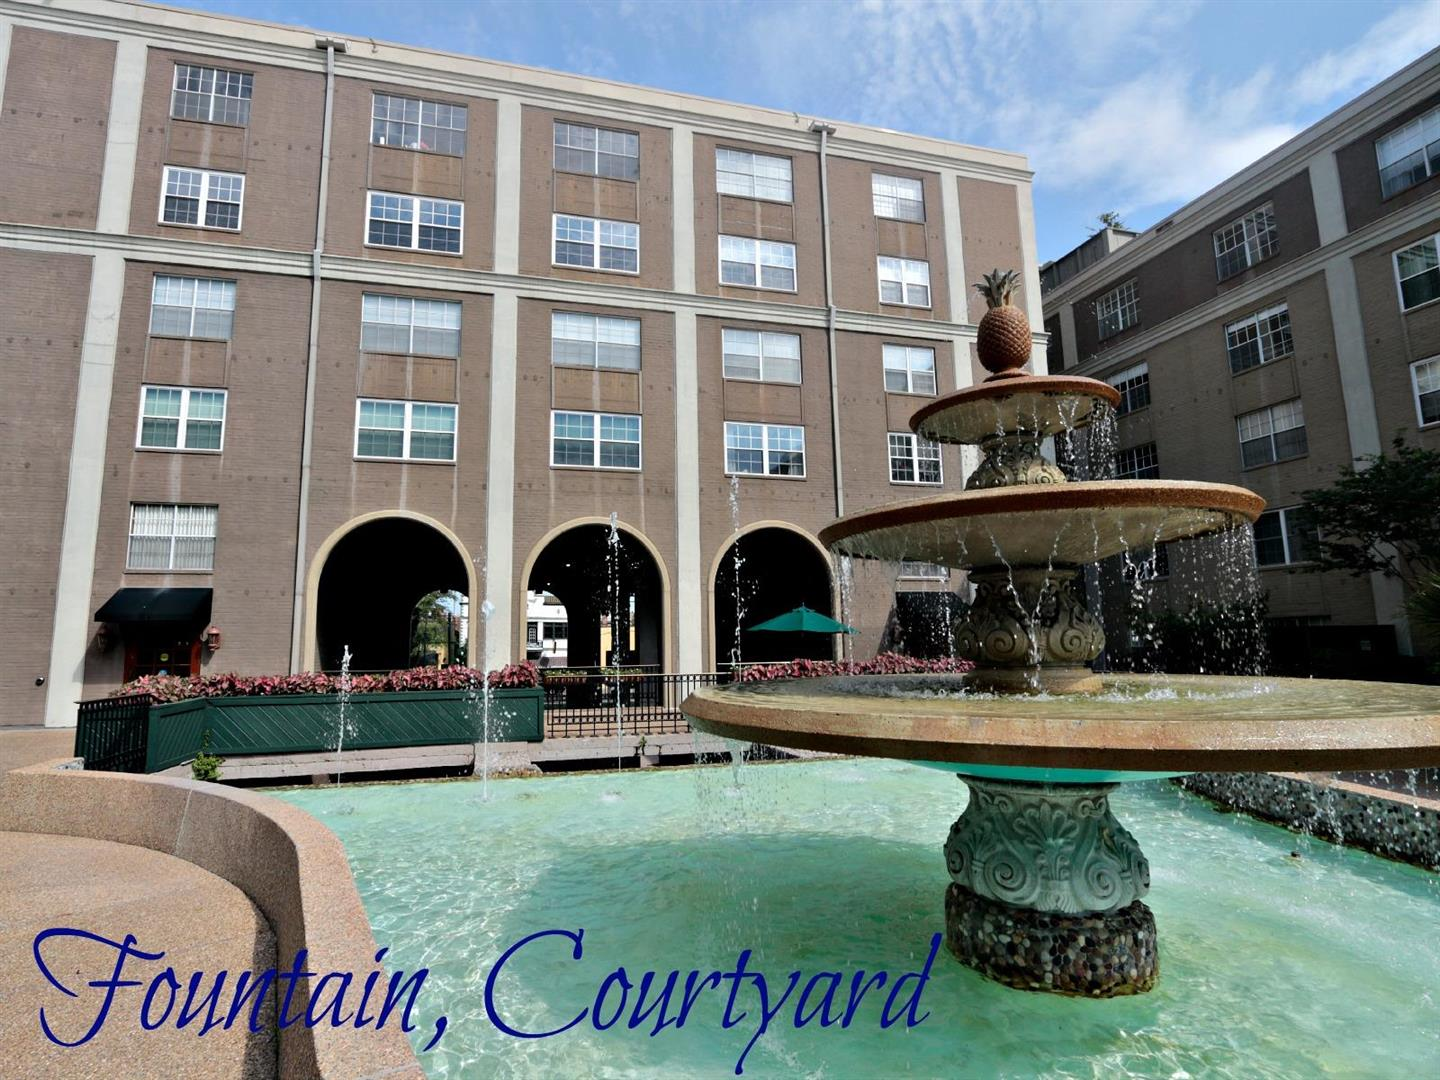 1750St.Charles639,FountaininCourtyard.jpg